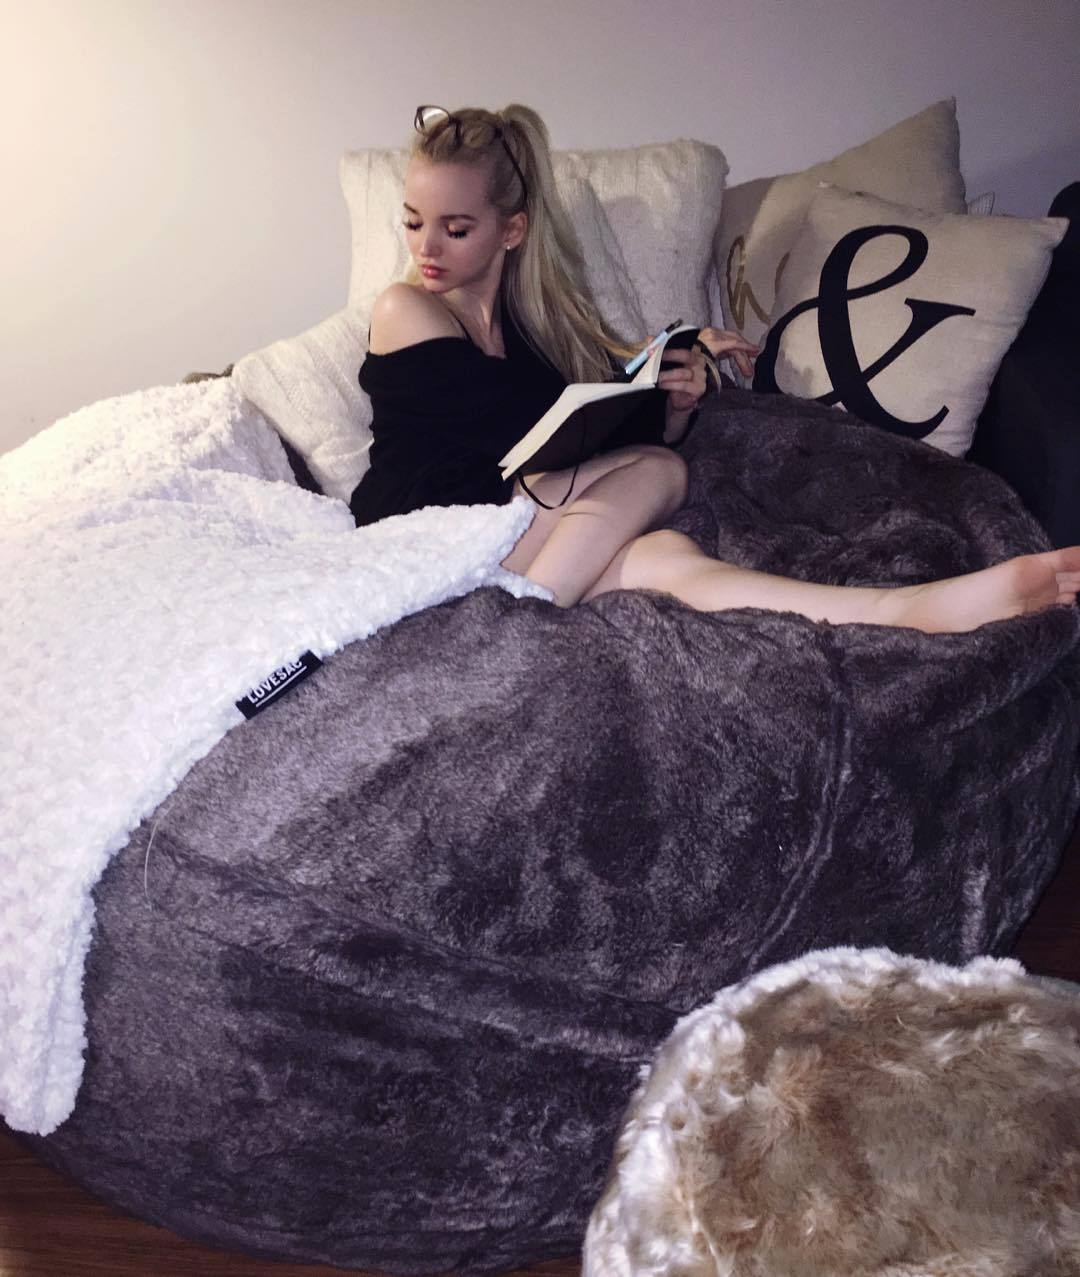 Sexy Feet Dove Cameron  nude (43 photo), Instagram, bra